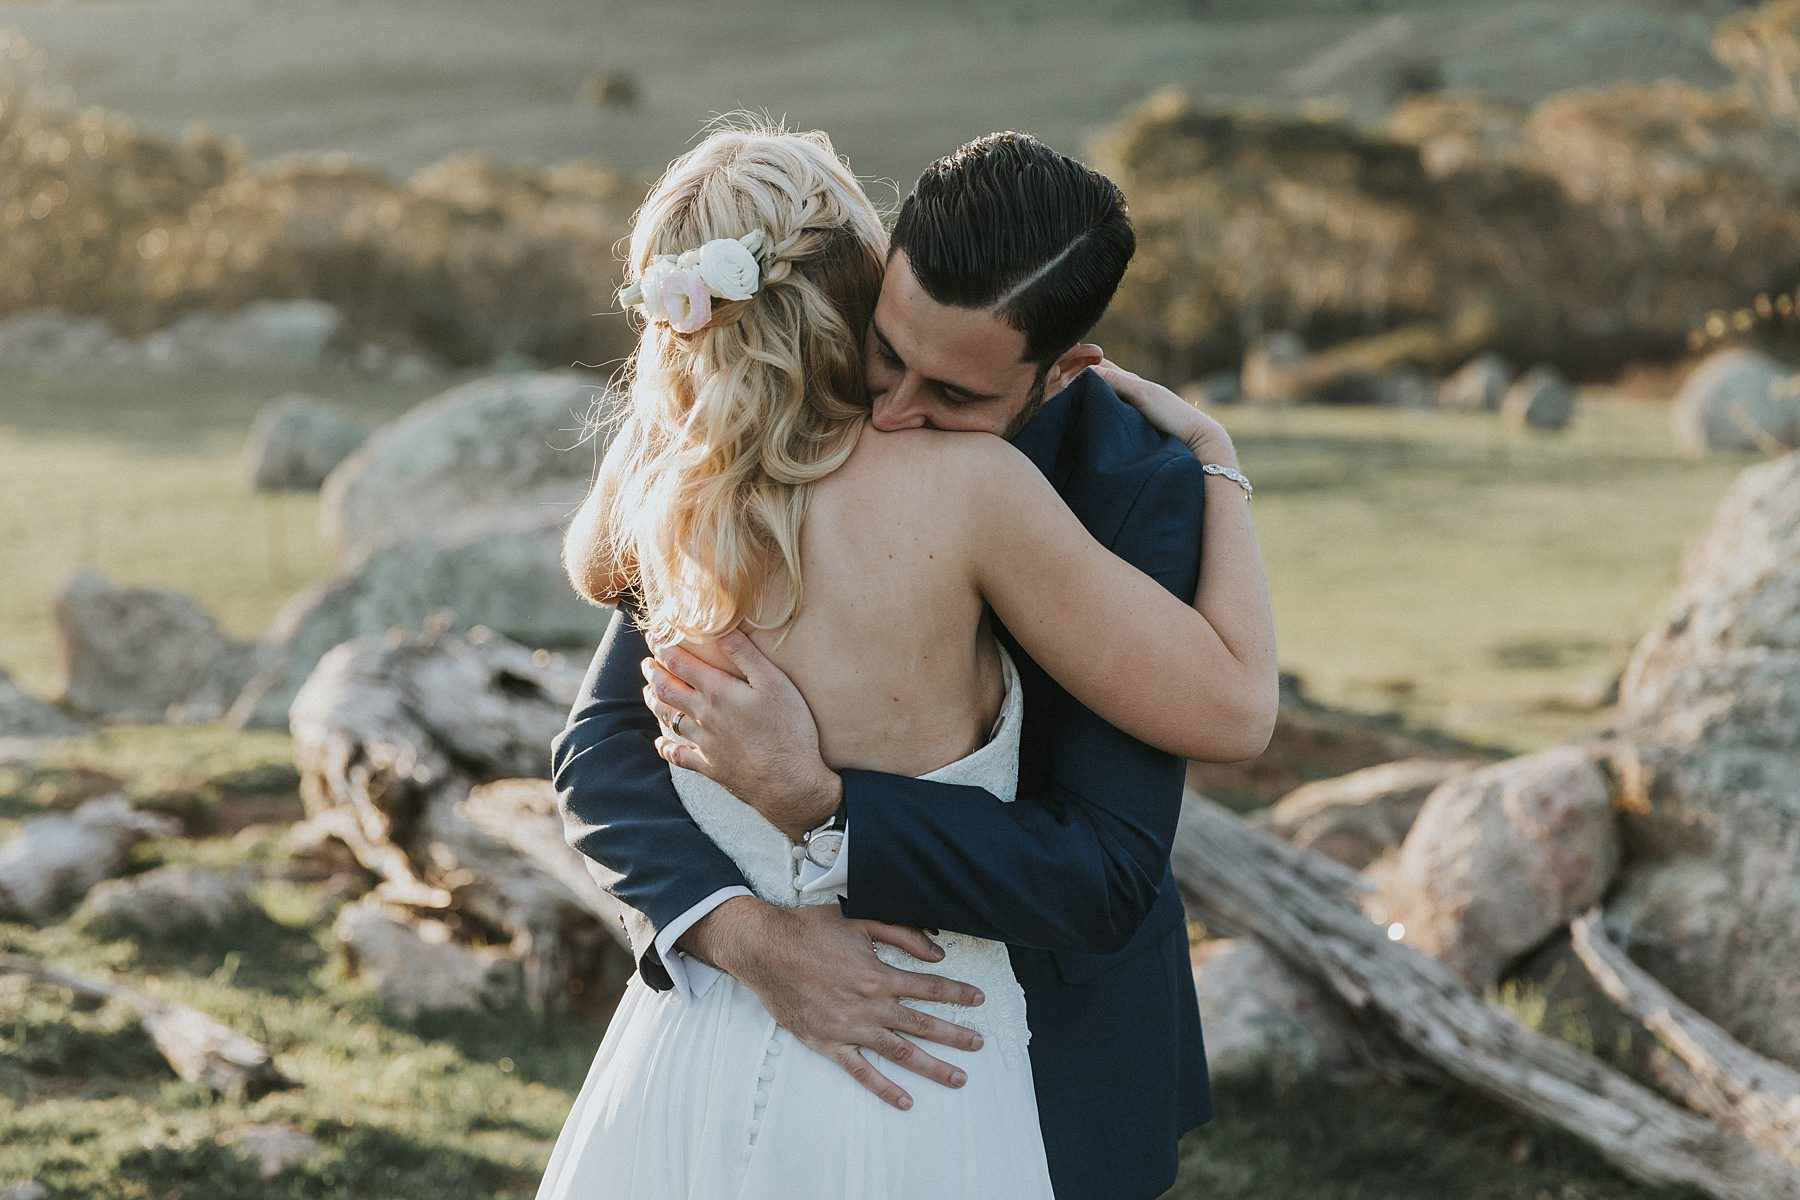 bride and groom embrace at waldara farm during wedding photos